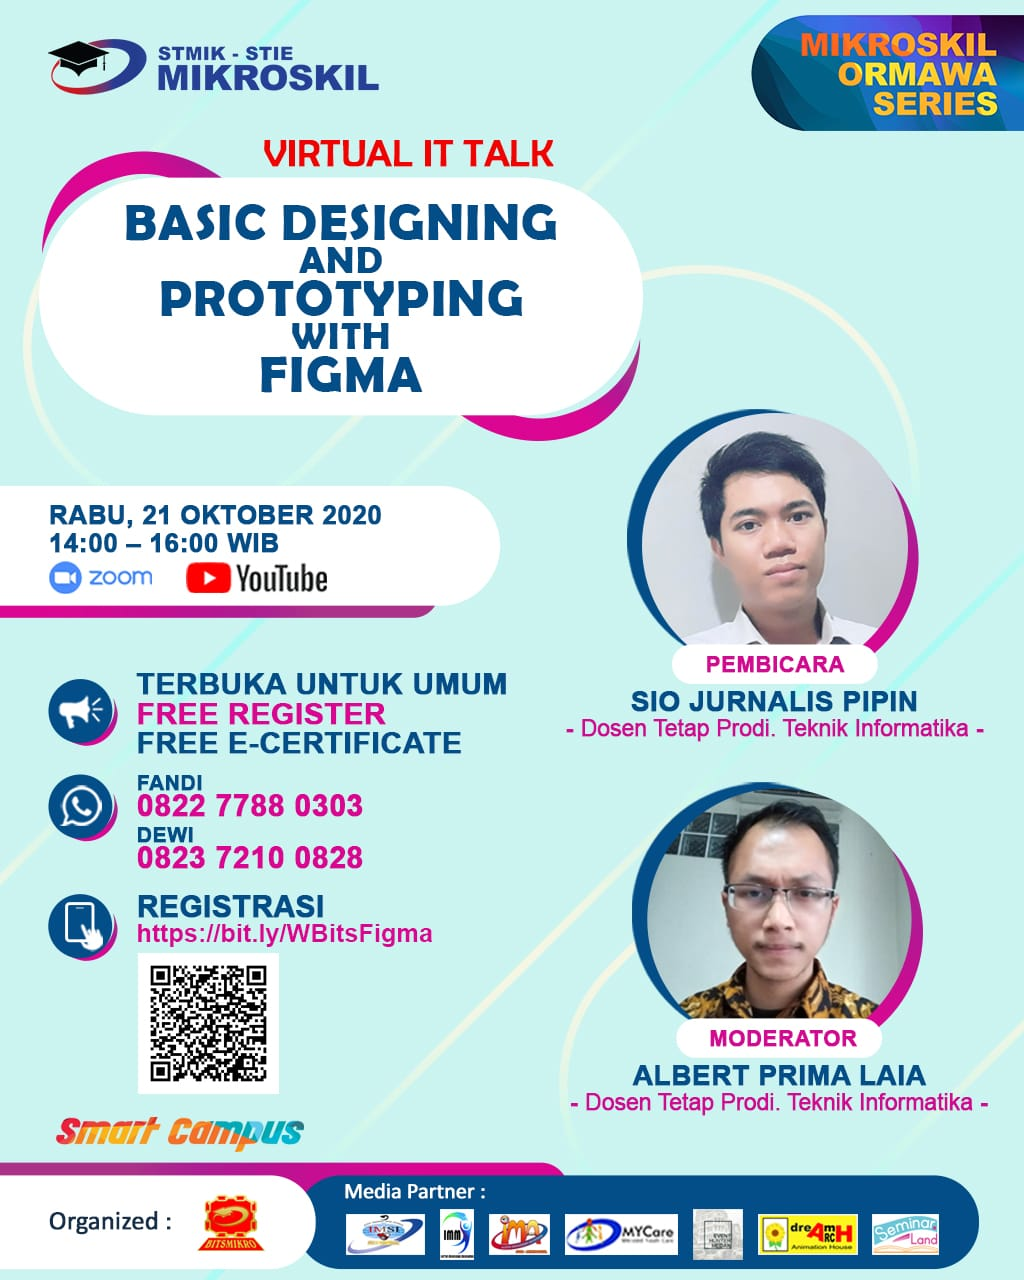 Poster: Basic Designing and Prototyping with Figma